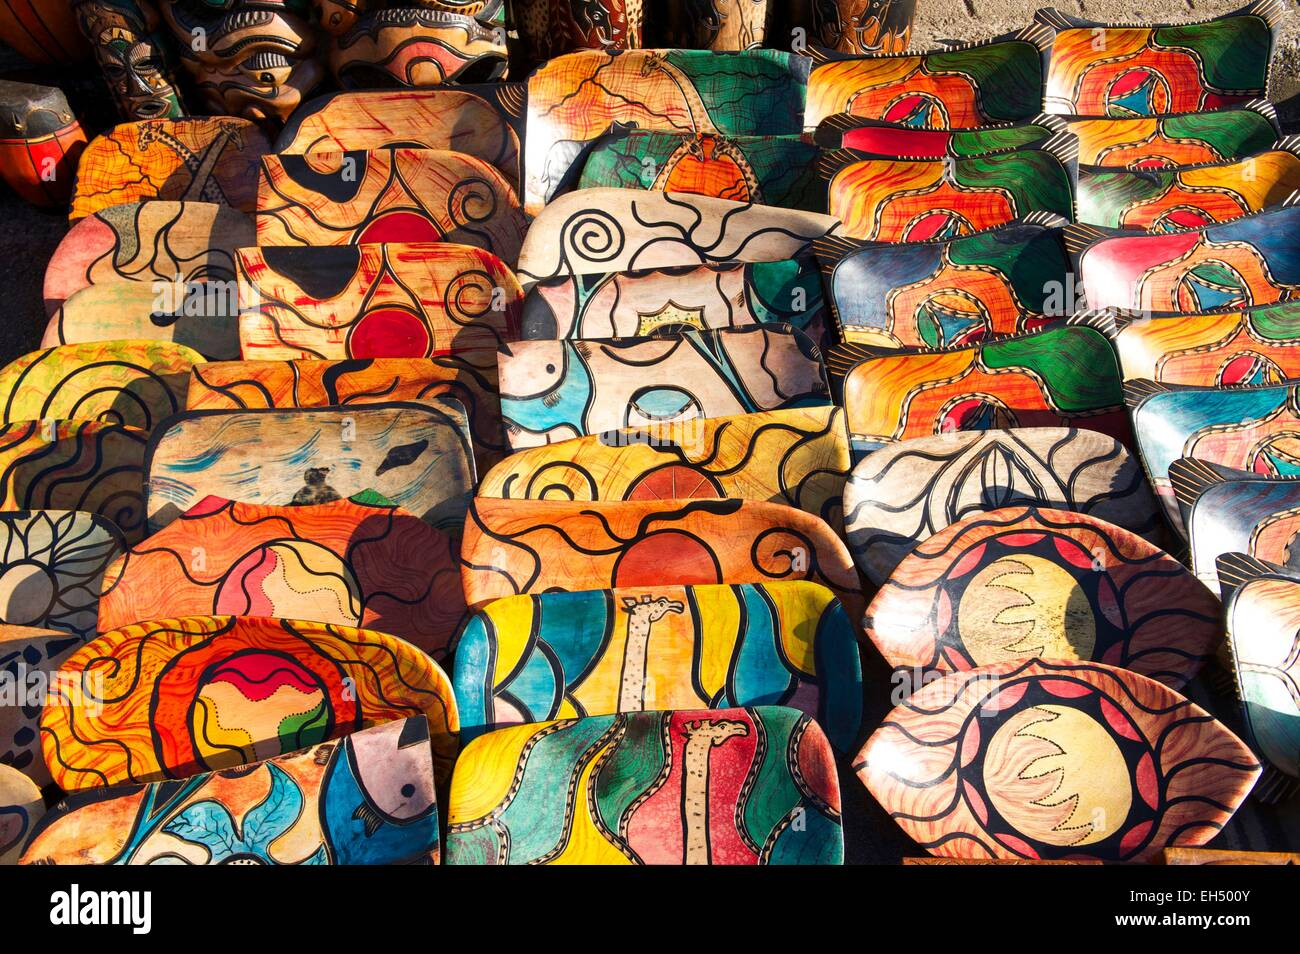 South Africa, Mpumalanga, Graskop, traditional plates - Stock Image